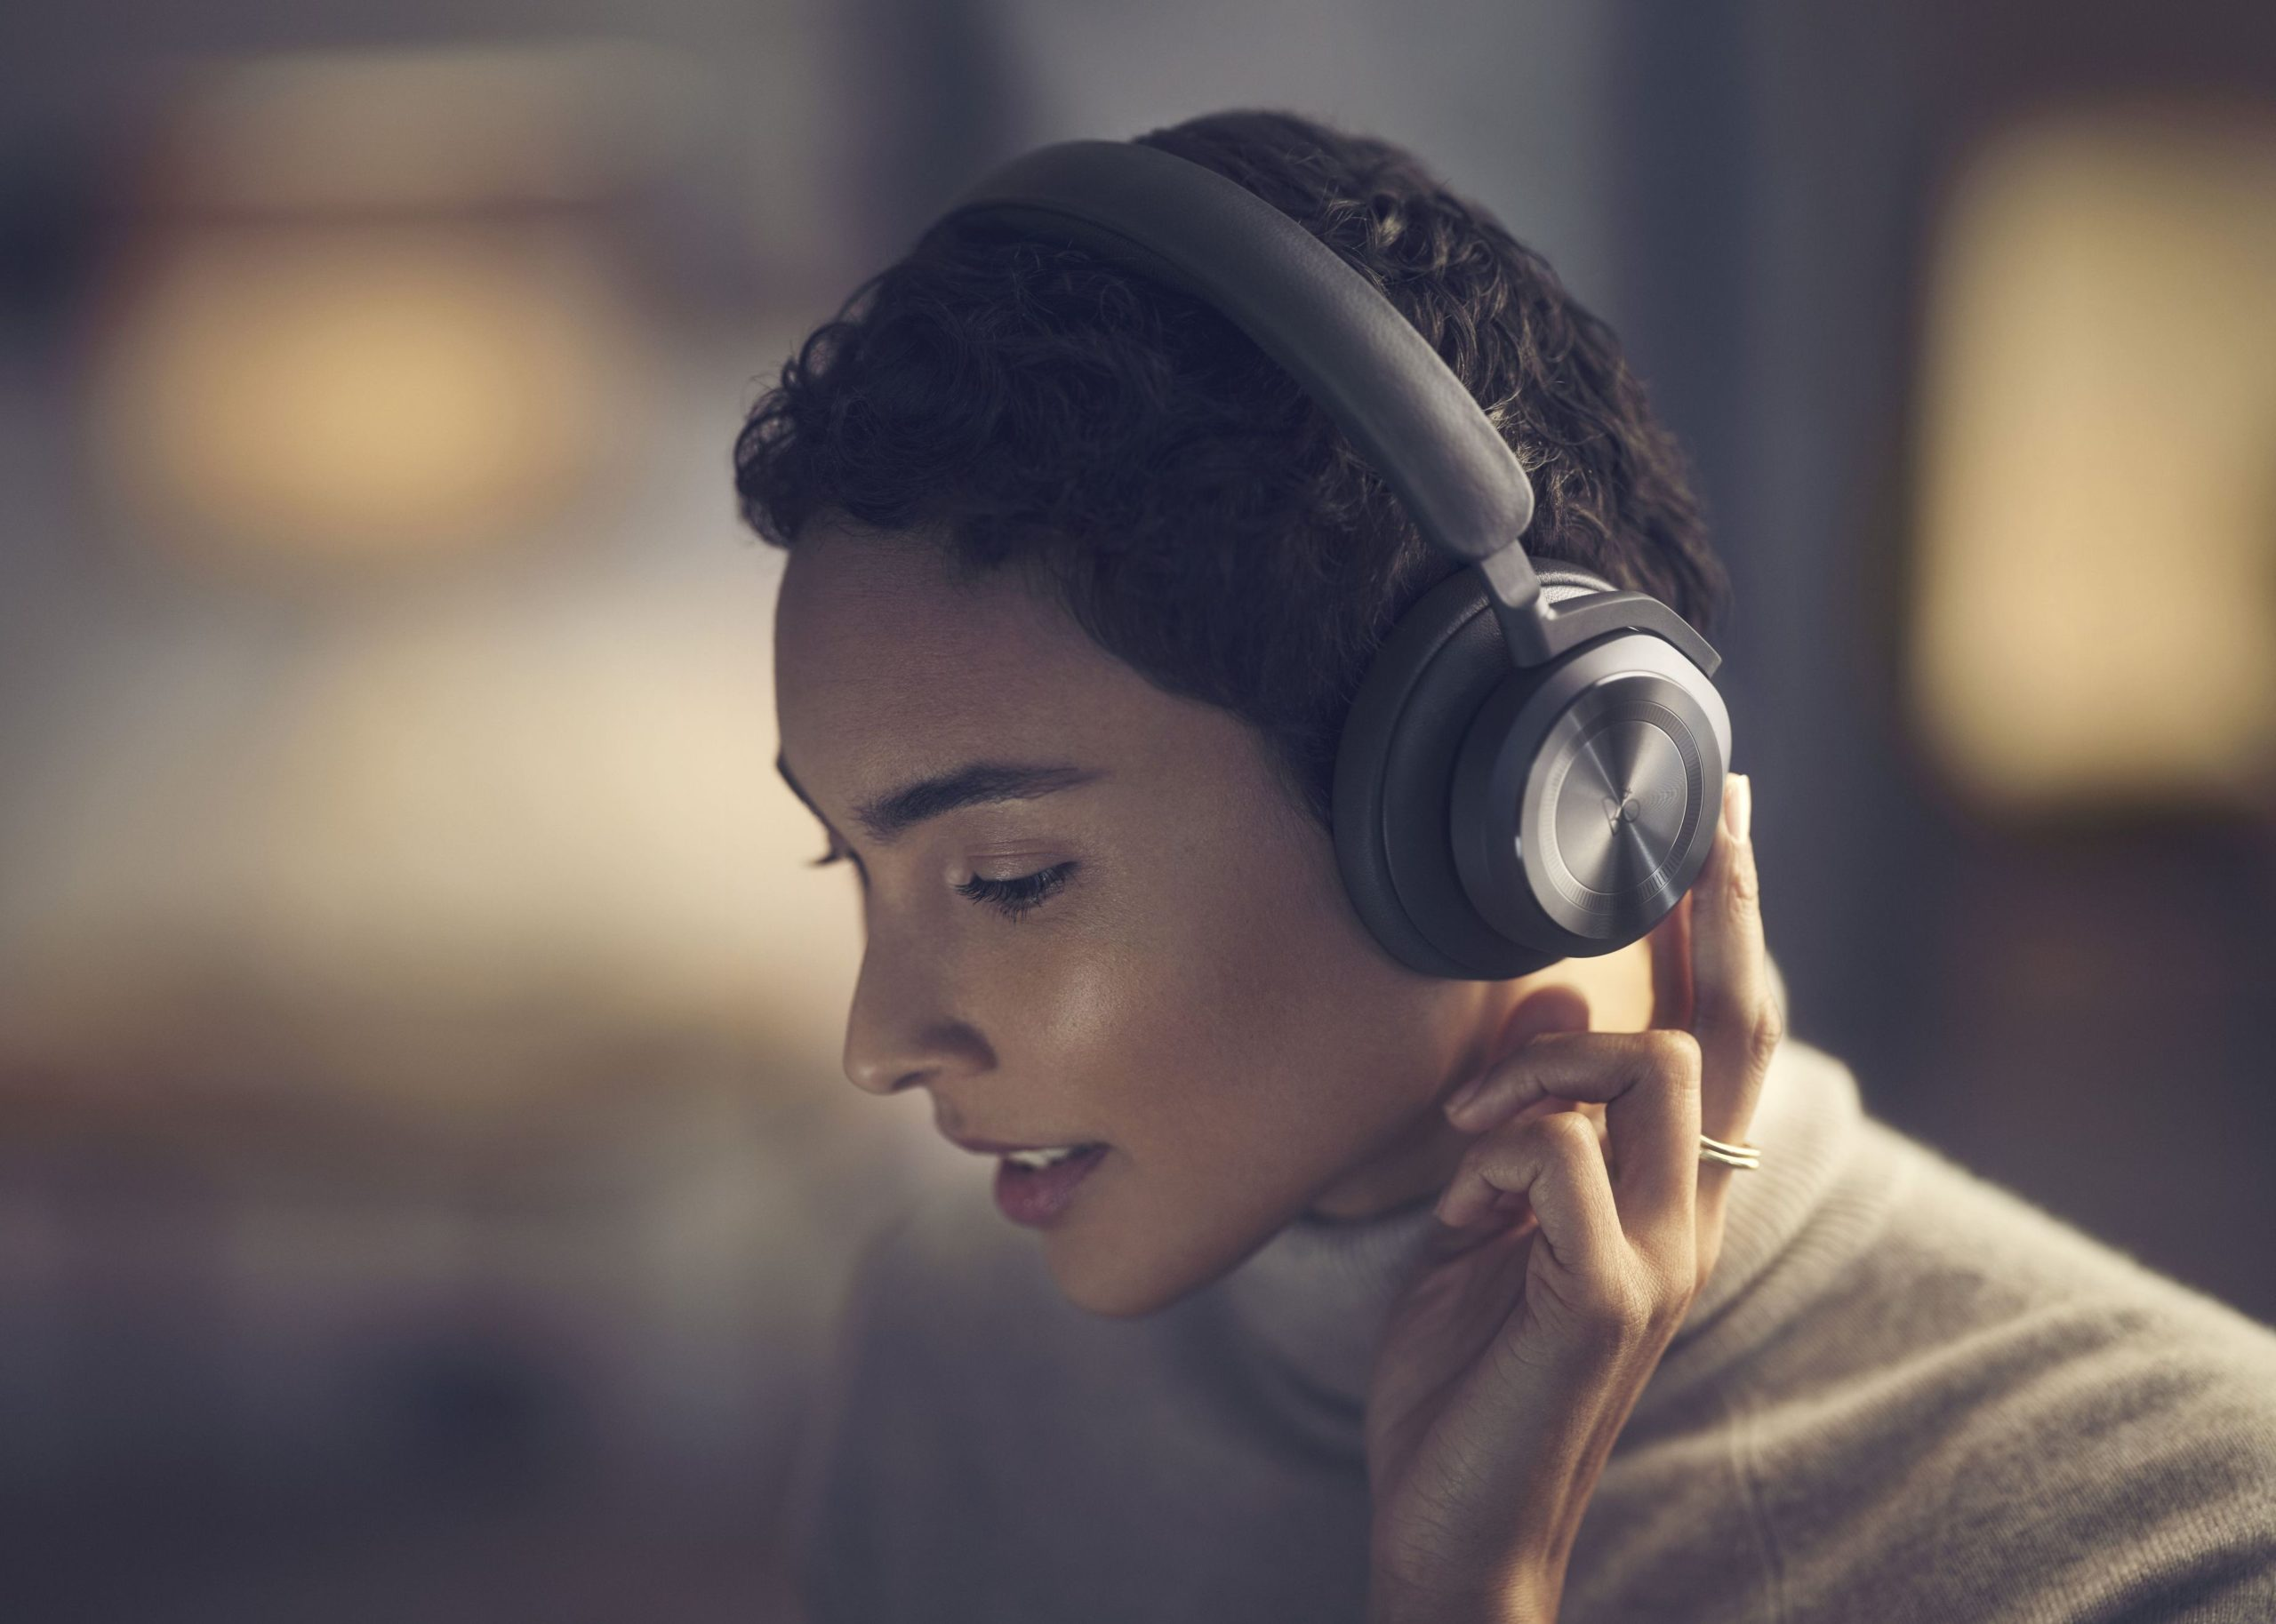 Bang & Olufsen's Beoplay HX are its newest stylish wireless headphones and the perfect addition to your next adventure's packing list.